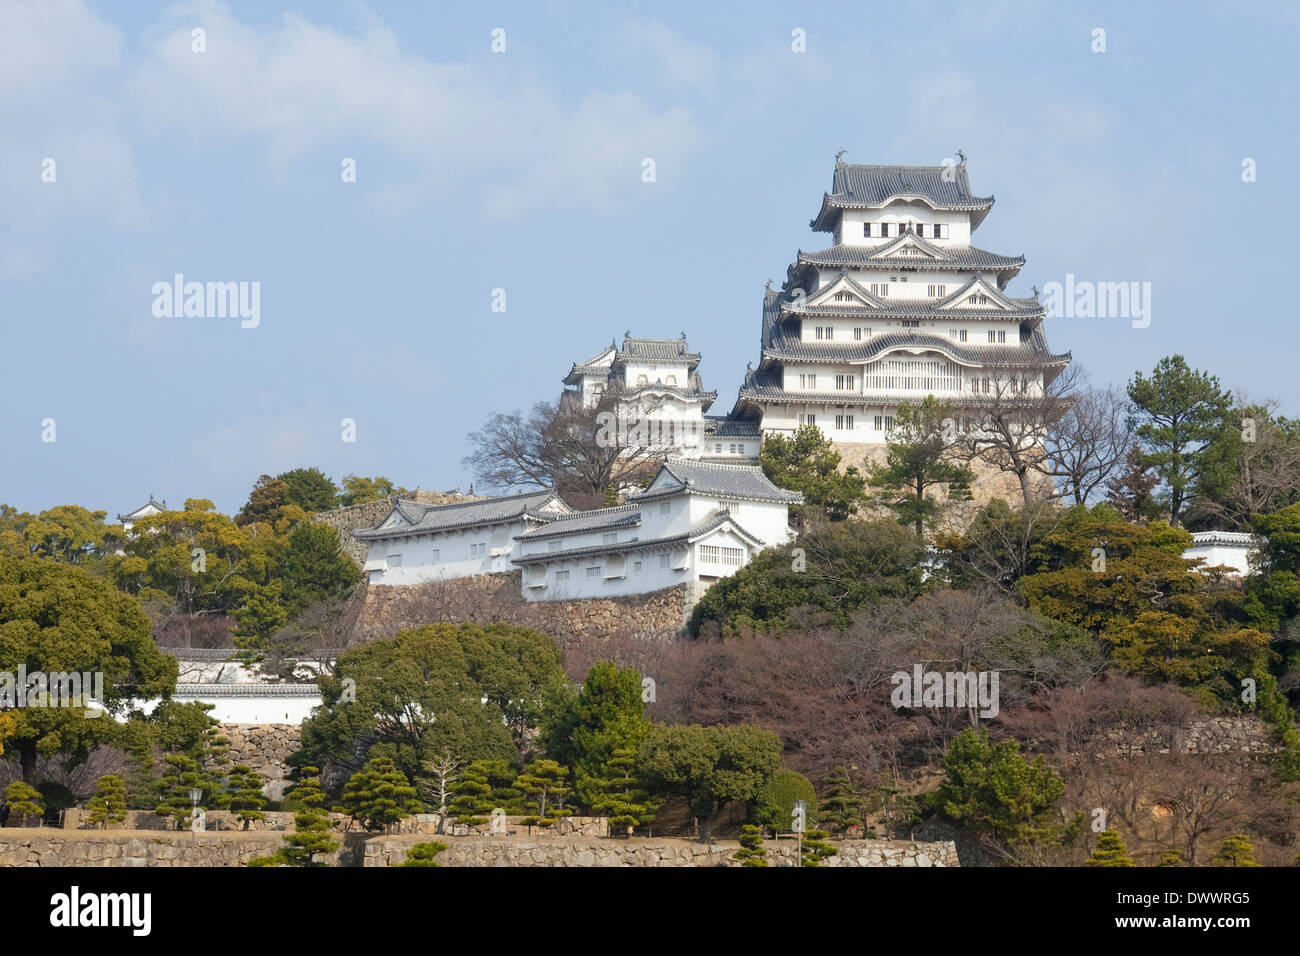 Himeji castle hyogo prefecture japan stock photo 67564789 alamy himeji castle hyogo prefecture japan publicscrutiny Choice Image